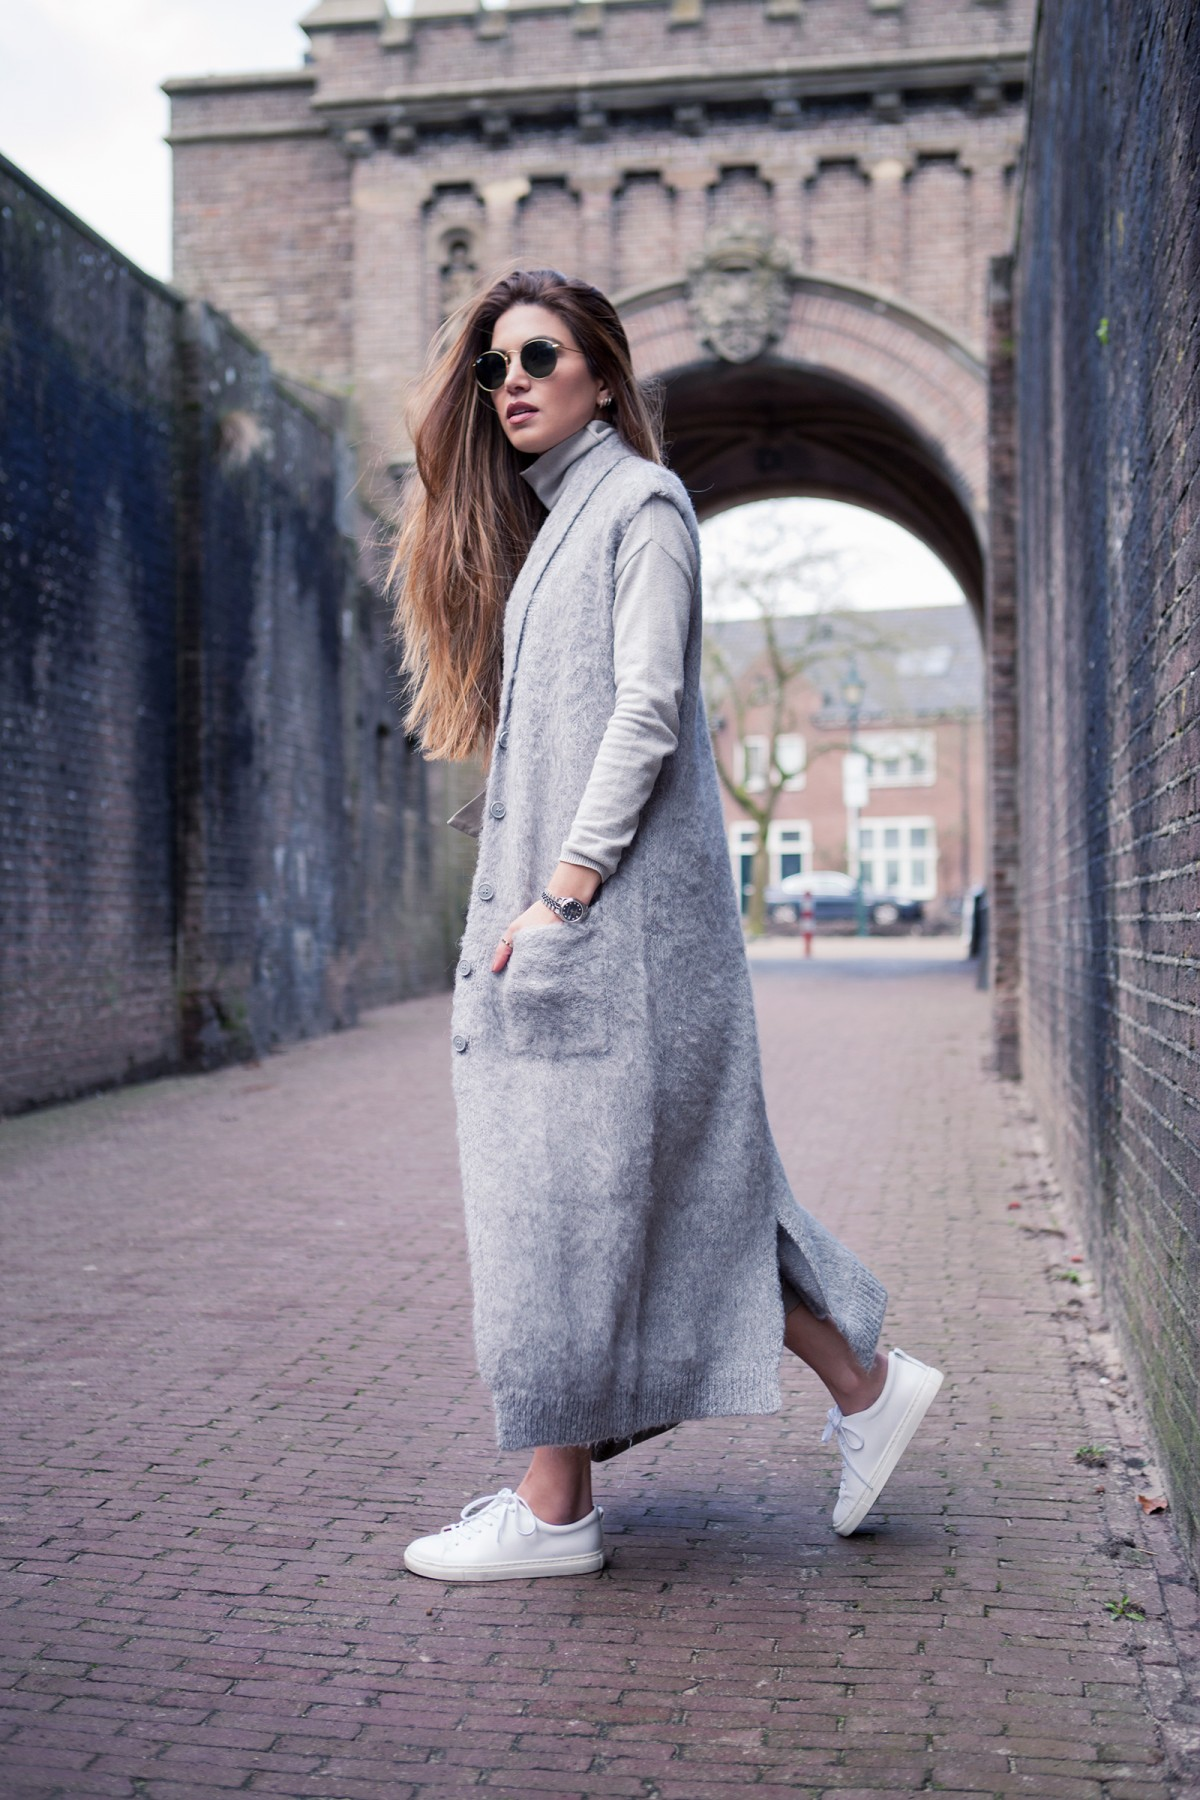 How To Style A Long Cardigan: Negin Mirsalehi is wearing a long sleeveless cardigan from Asos